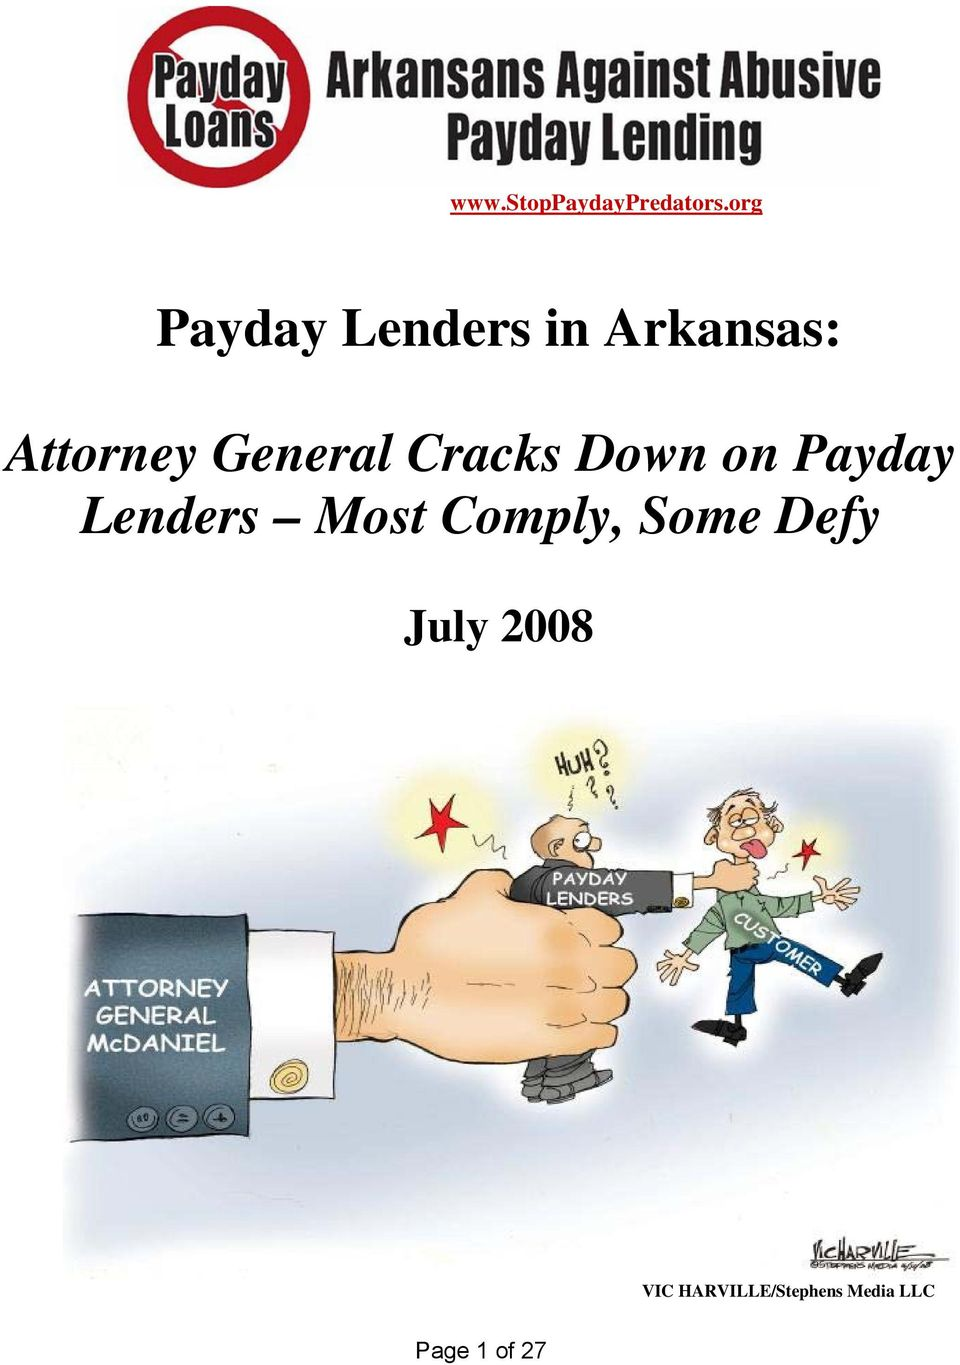 General Cracks Down on Payday Lenders Most